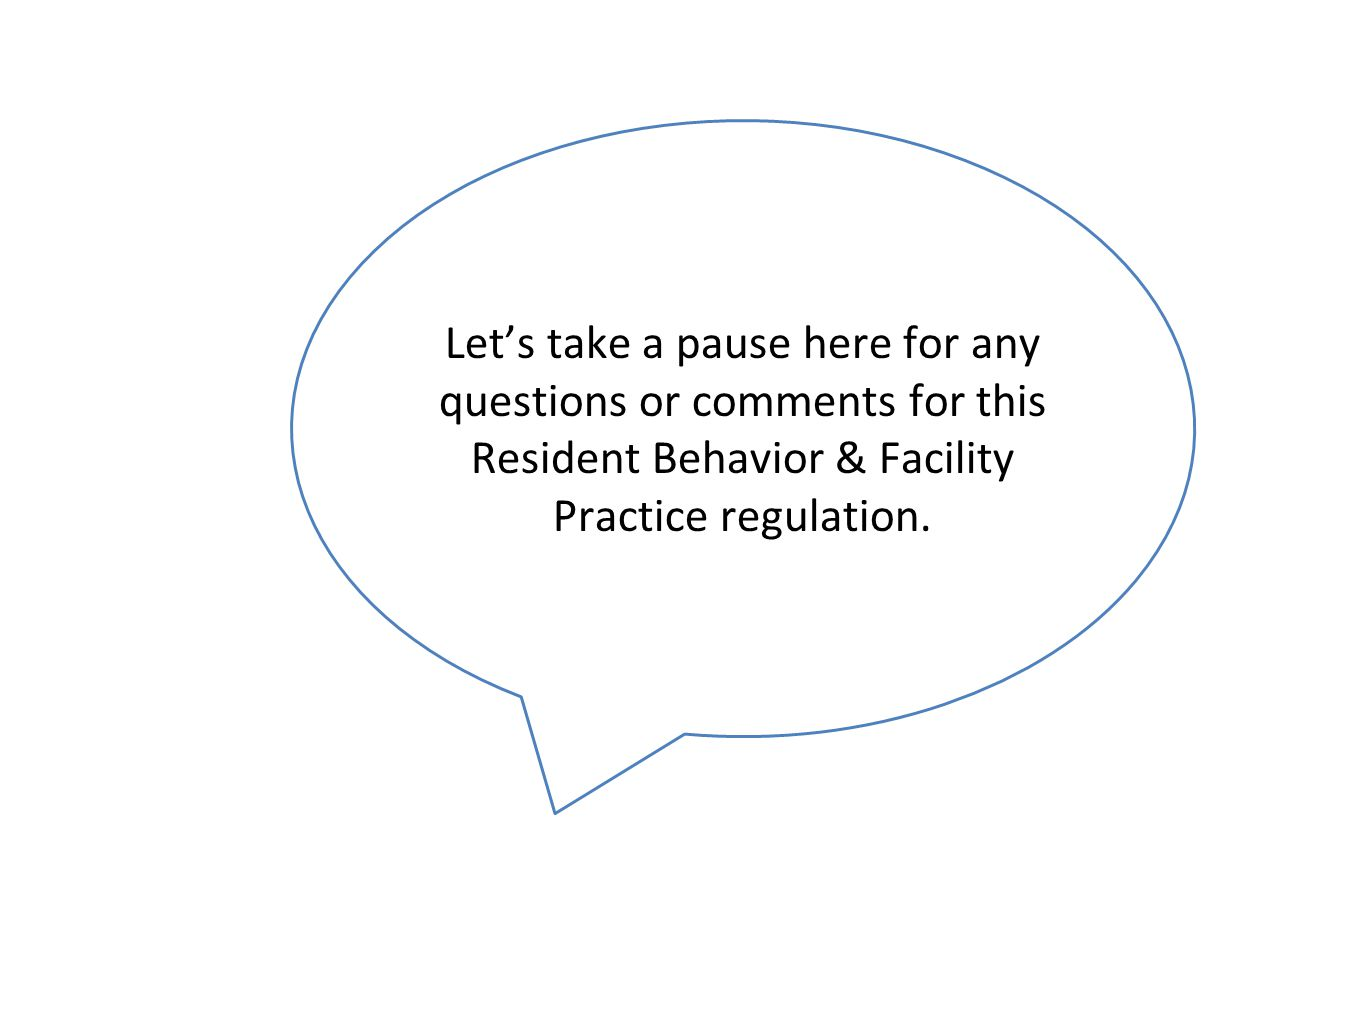 Let's take a pause here for any questions or comments for this Resident Behavior & Facility Practice regulation.